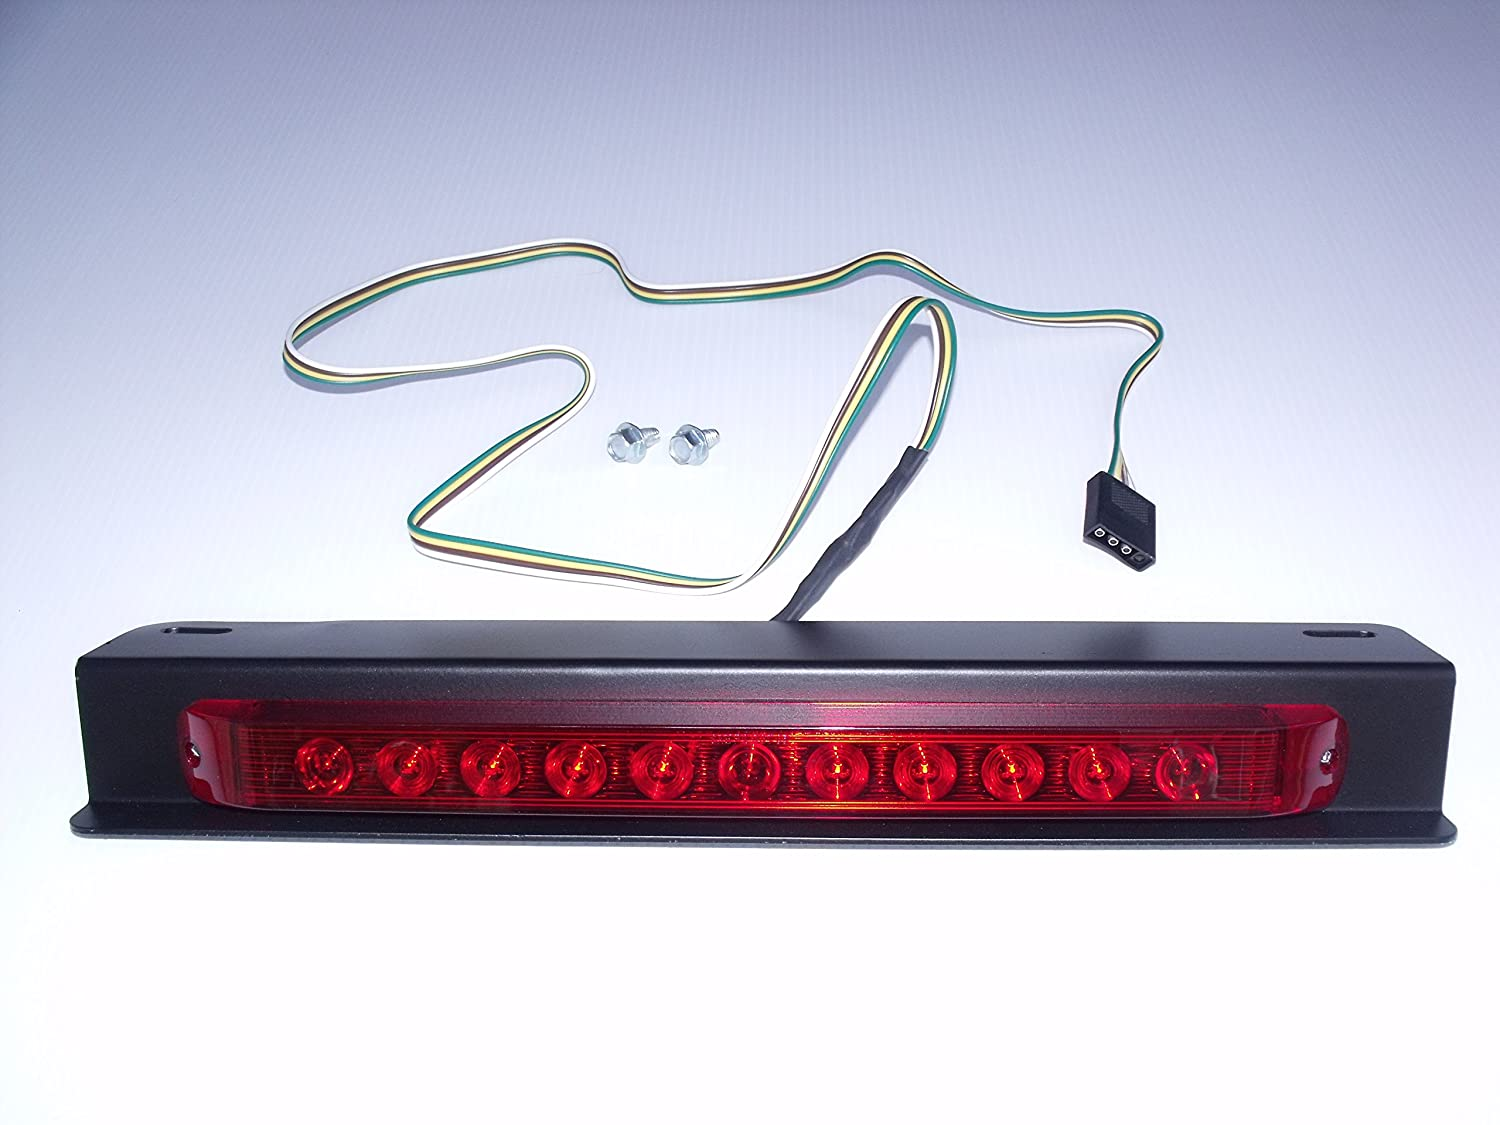 LED Light Bar kit for Hitch Cargo/Motorcycle/Bike Carriers tail lights and other automotive accessories Boss Truck Accessories